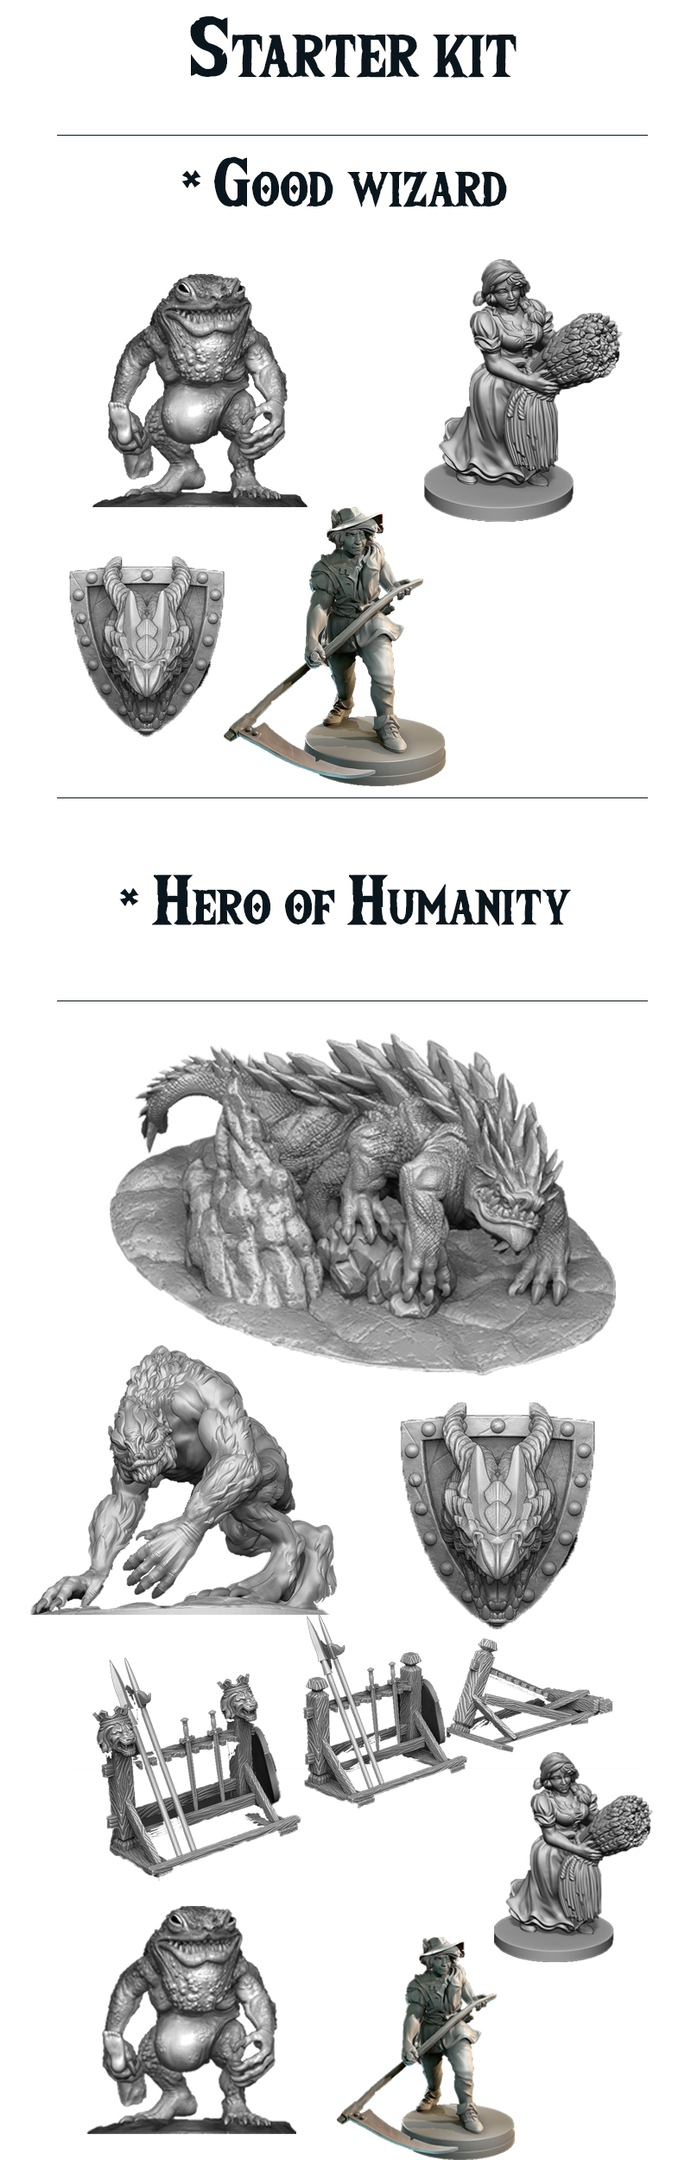 Evocatus miniature is creating 3D miniatures for D&D | Patreon